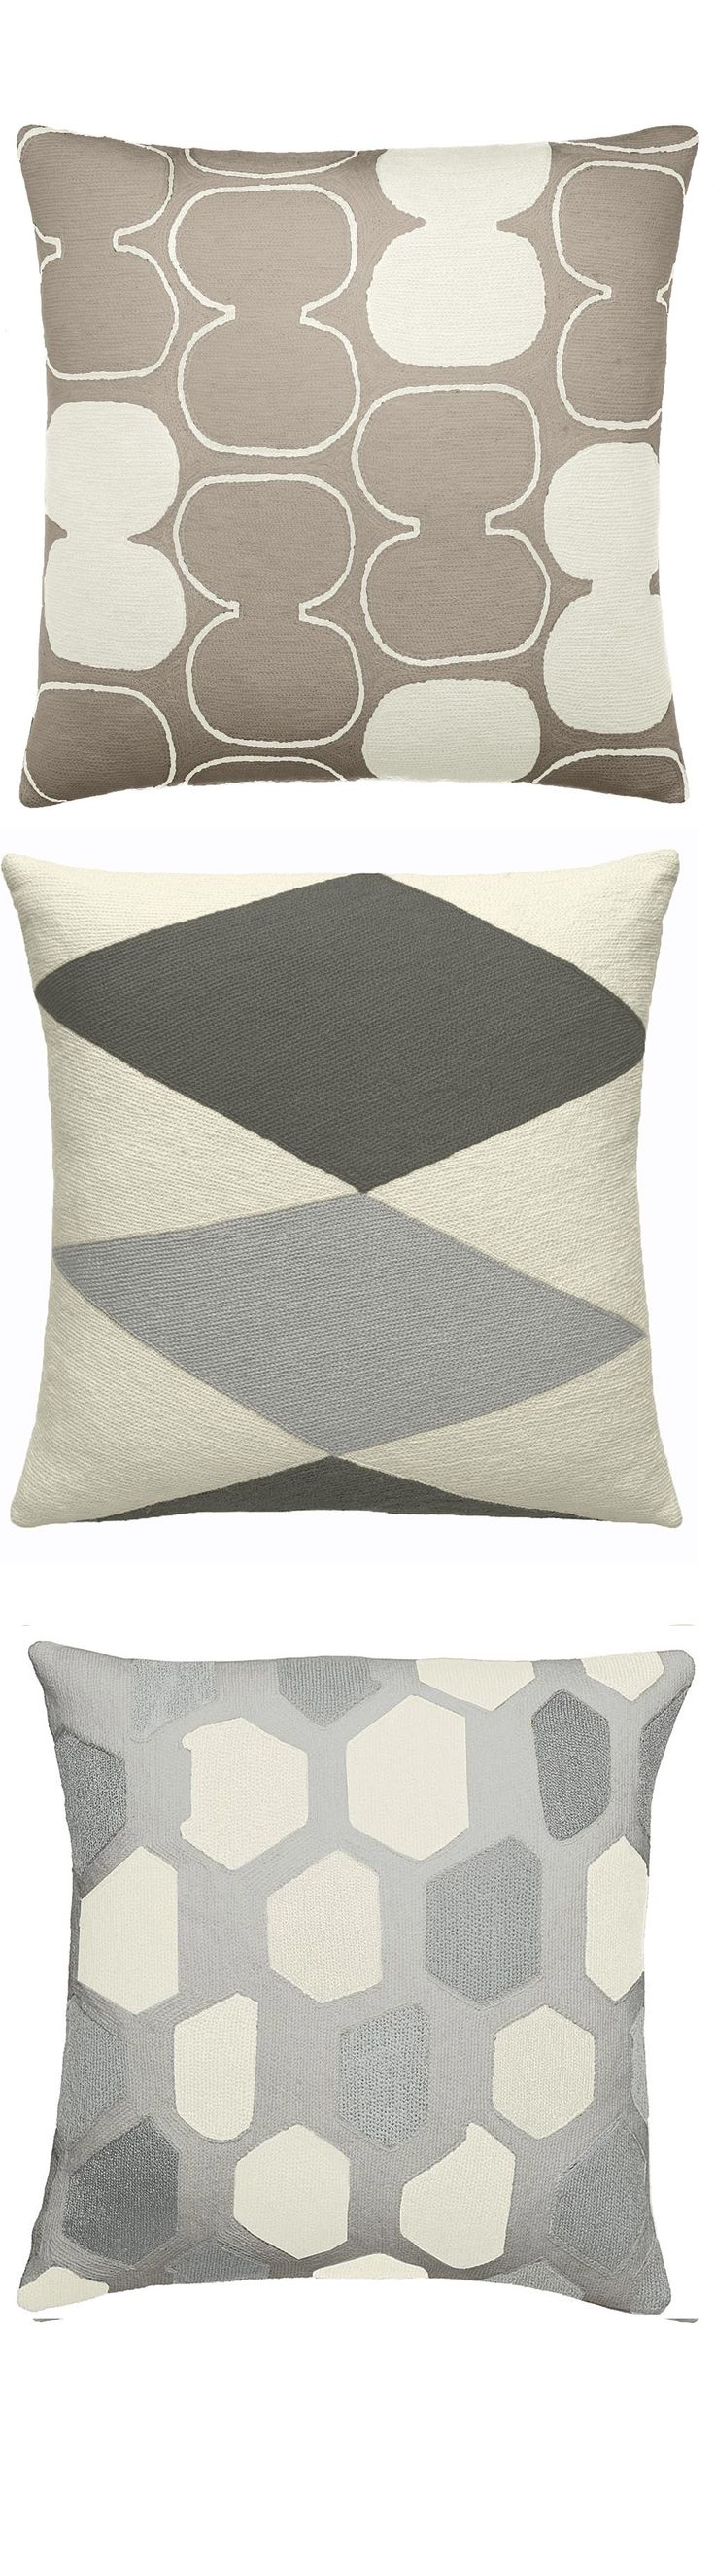 Best 25 Grey pillow cases ideas on Pinterest